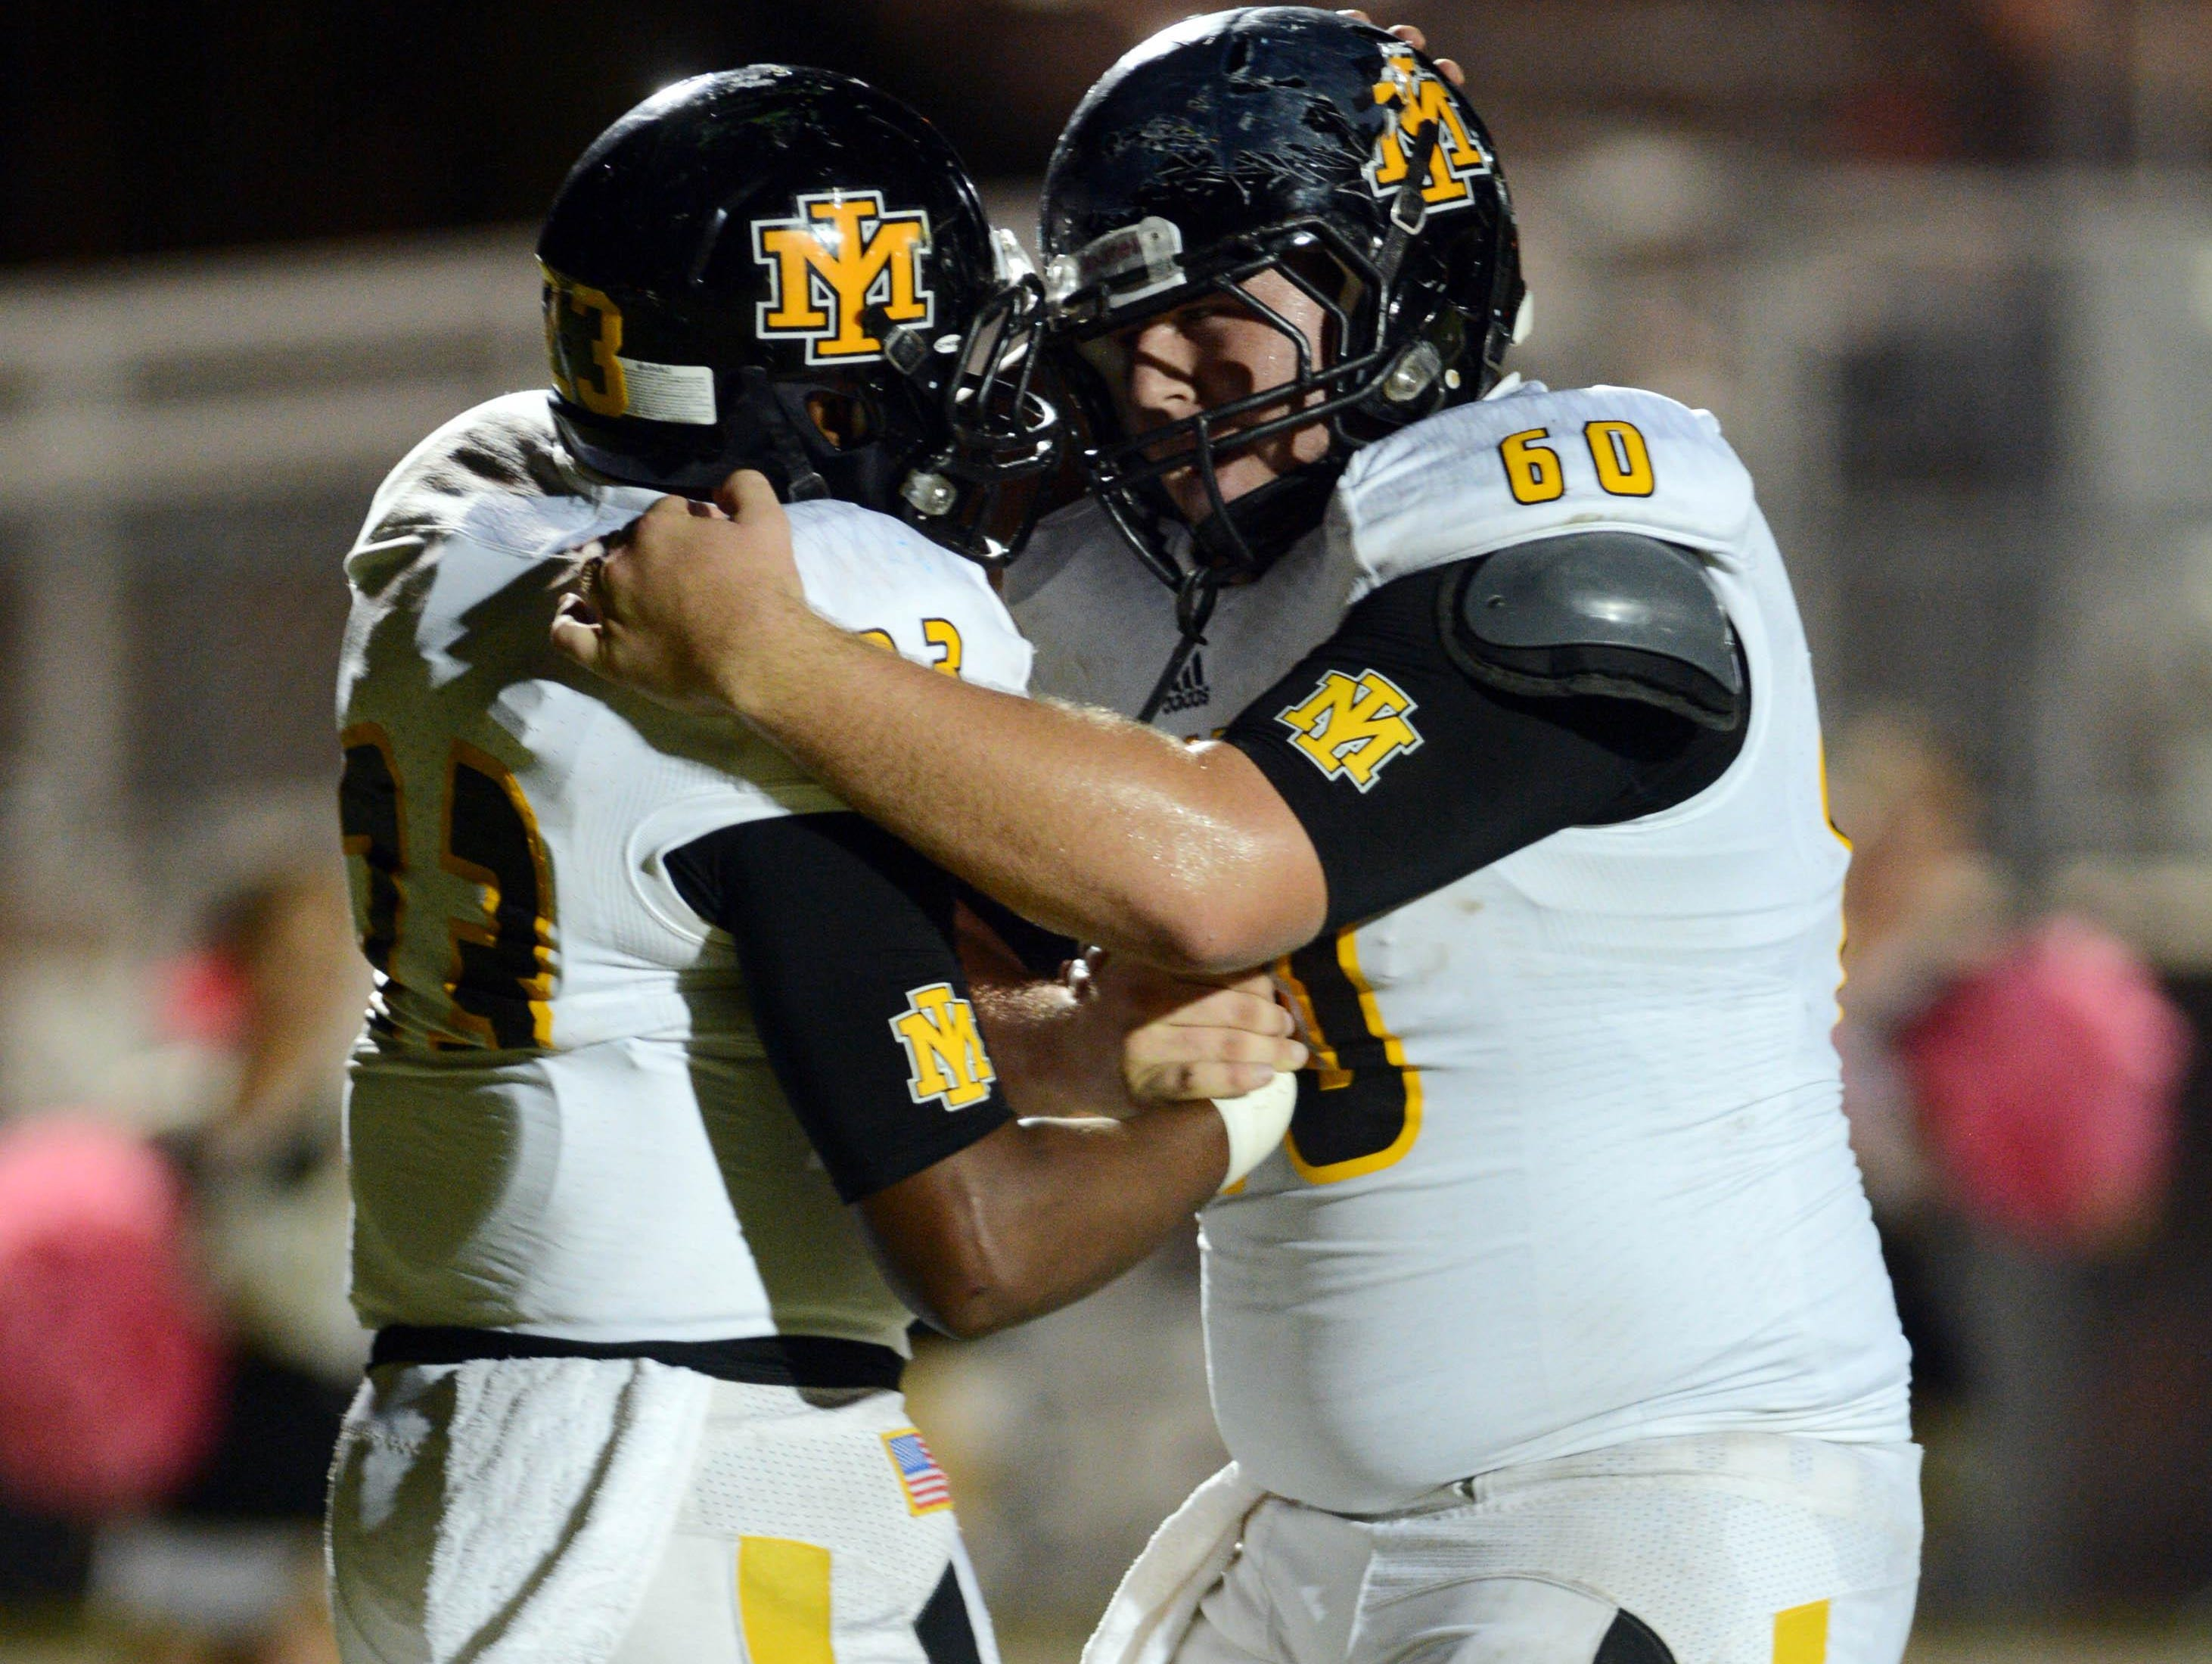 Raleigh Barfield is congratulated after his TD by teammate Bailey Herring in last week's game.